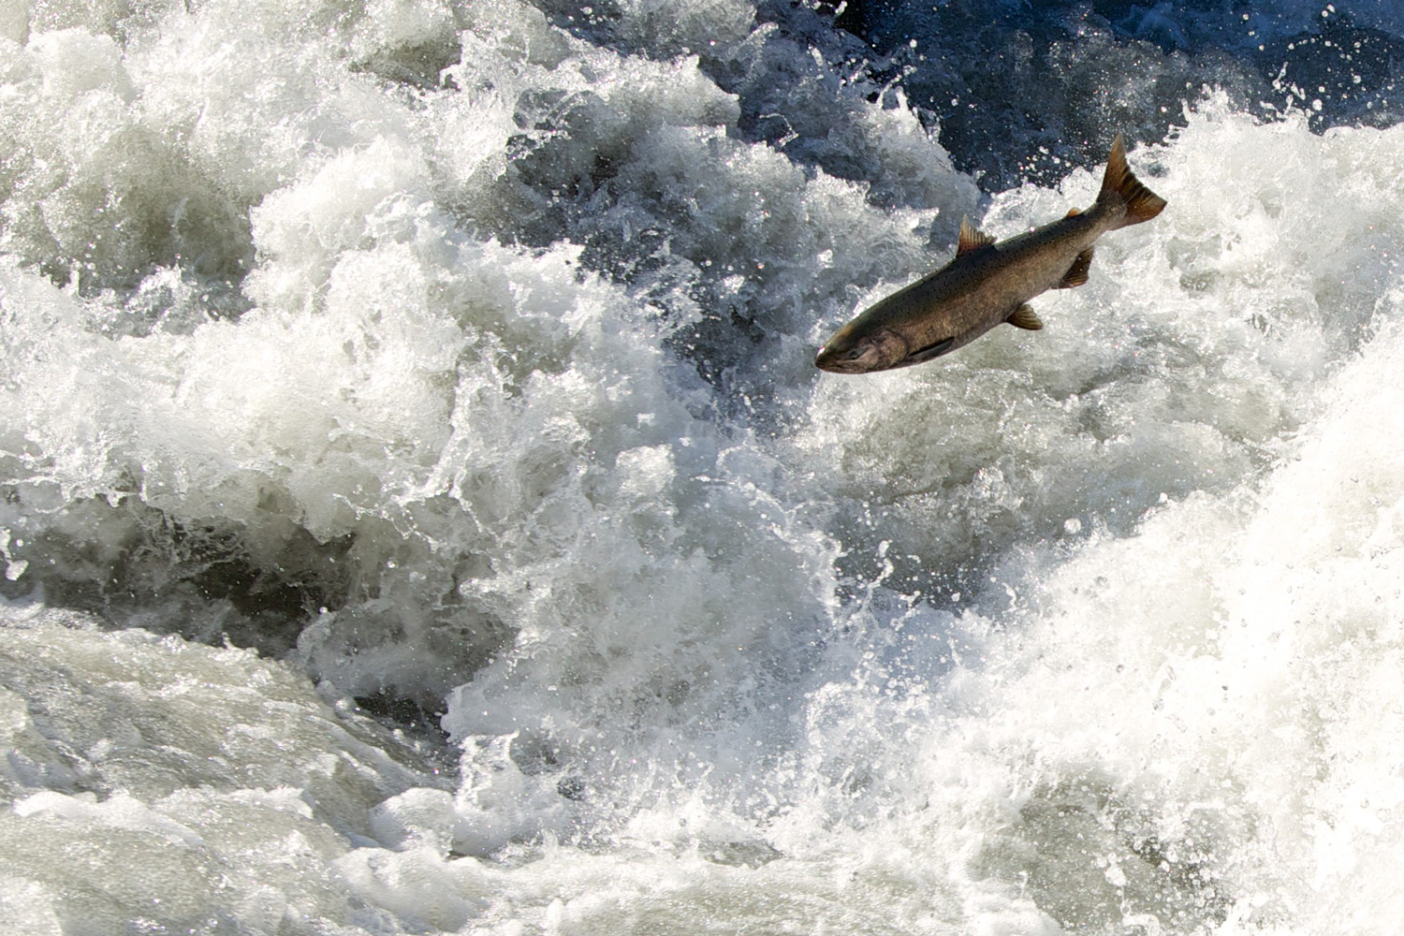 For the first time in a century, an adult chinook salmon launches past a rapid where Elwha Dam was recently removed. Dozens of miles of productive spawning and reading habitat now await upstream. DamNation collection. Photo: Matt Stoecker